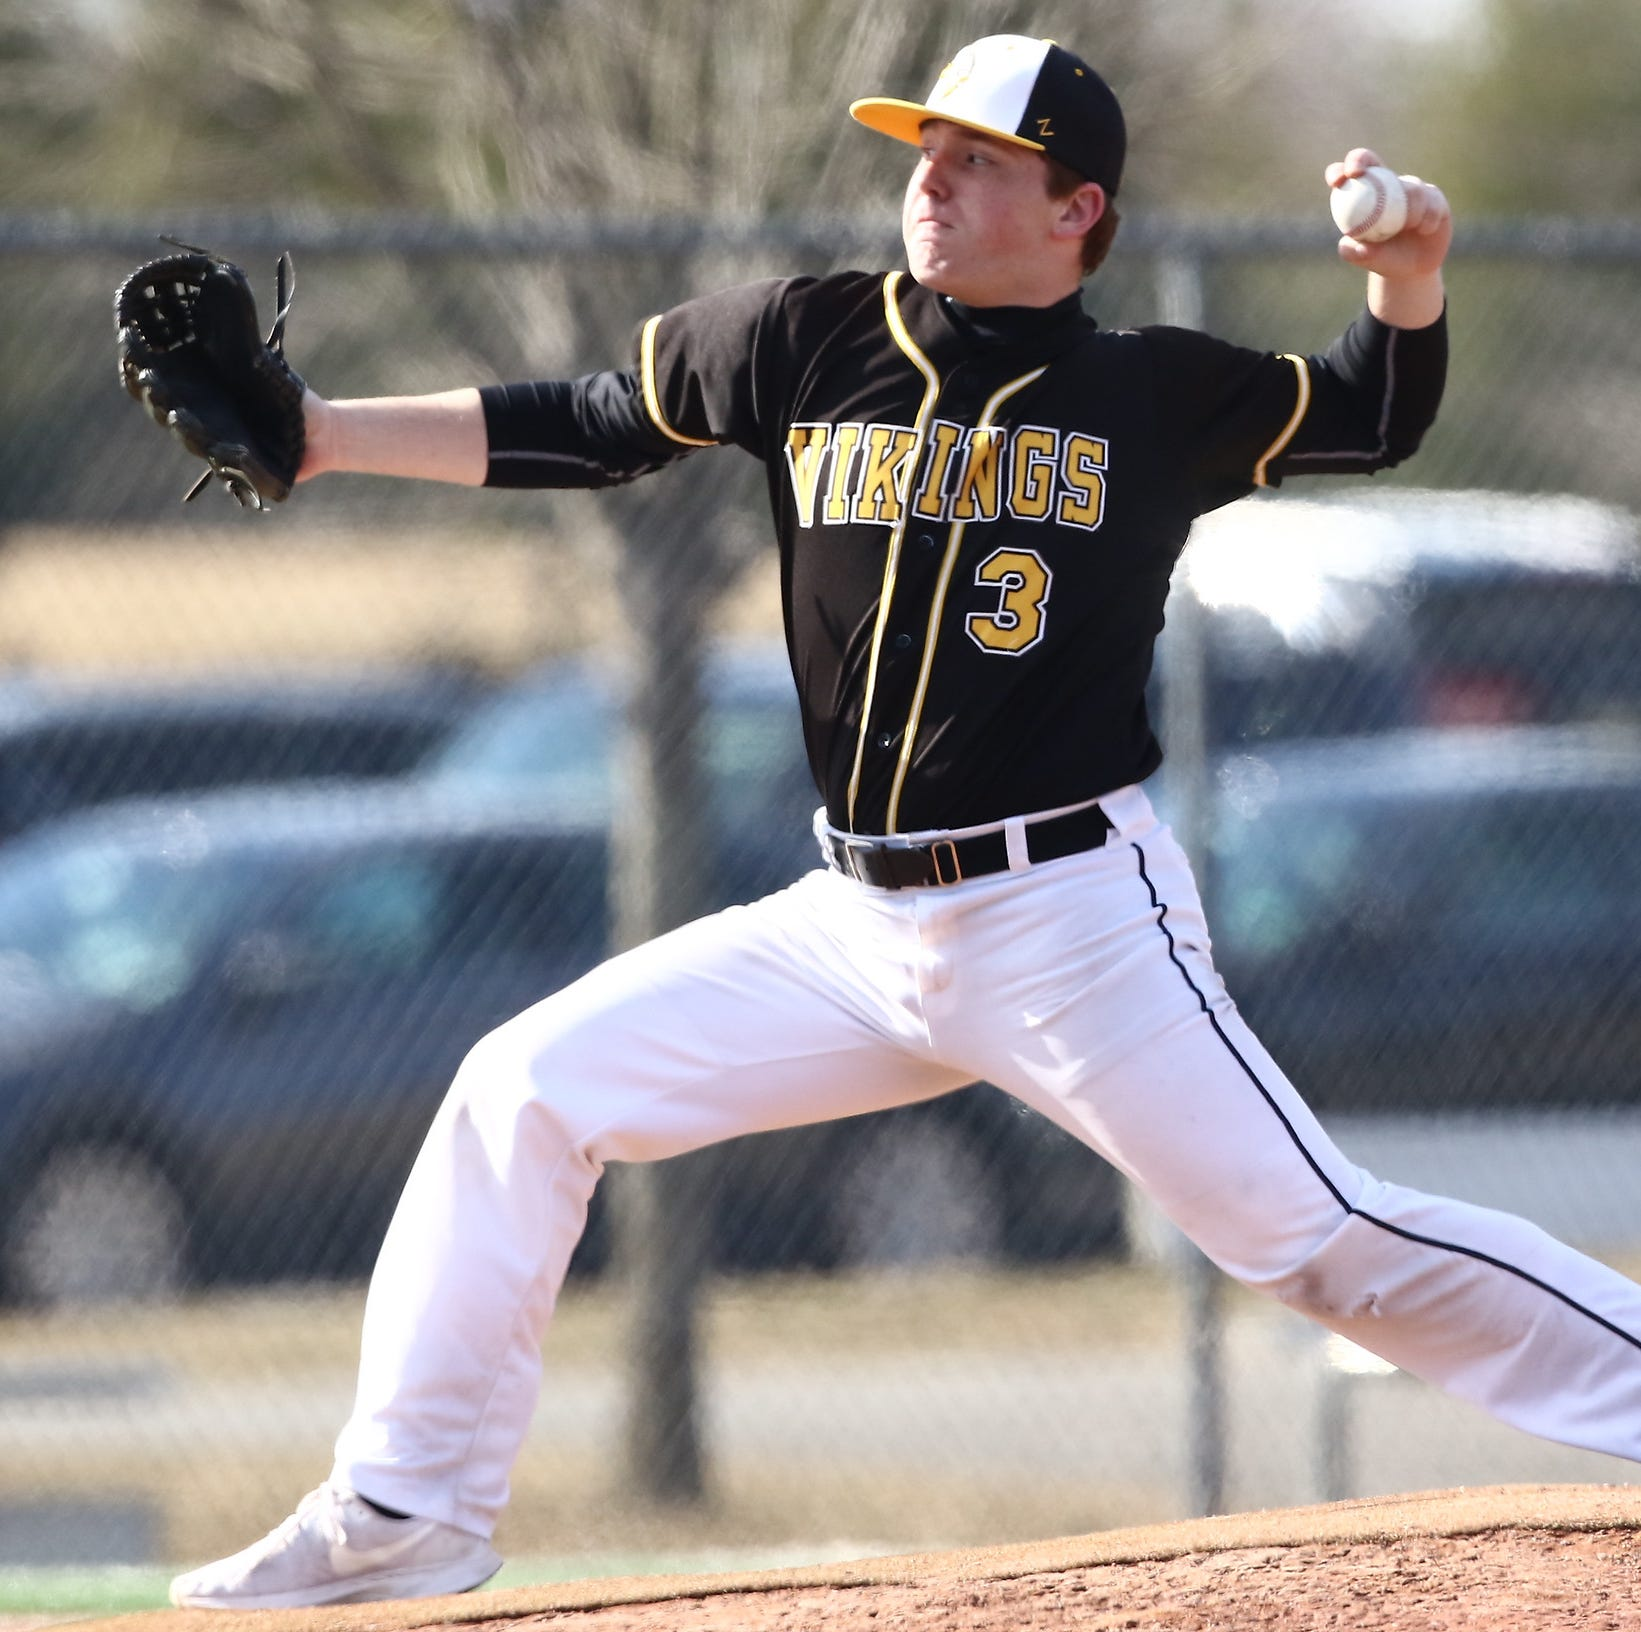 NJ baseball: South Brunswick advances to GMCT final with win over Piscataway